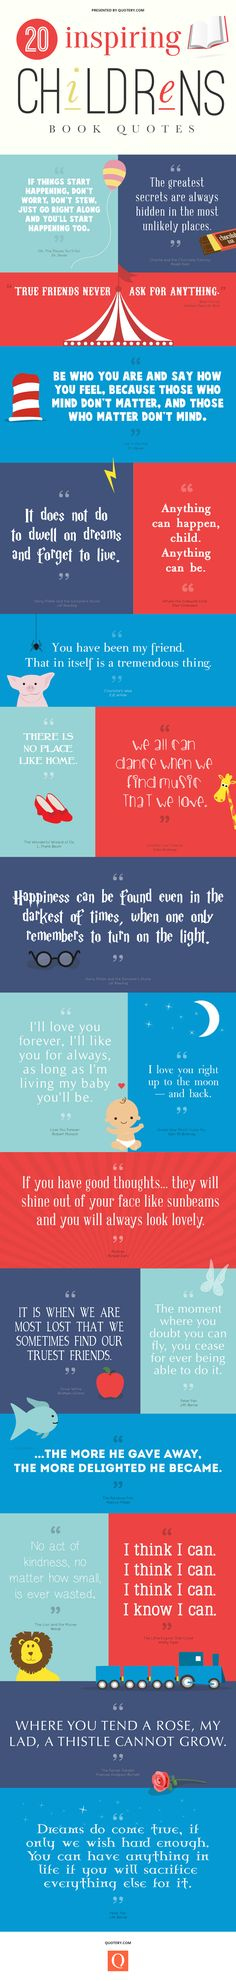 INFOGRAPHIC~ 20 Inspiring Quotes from Children's Books